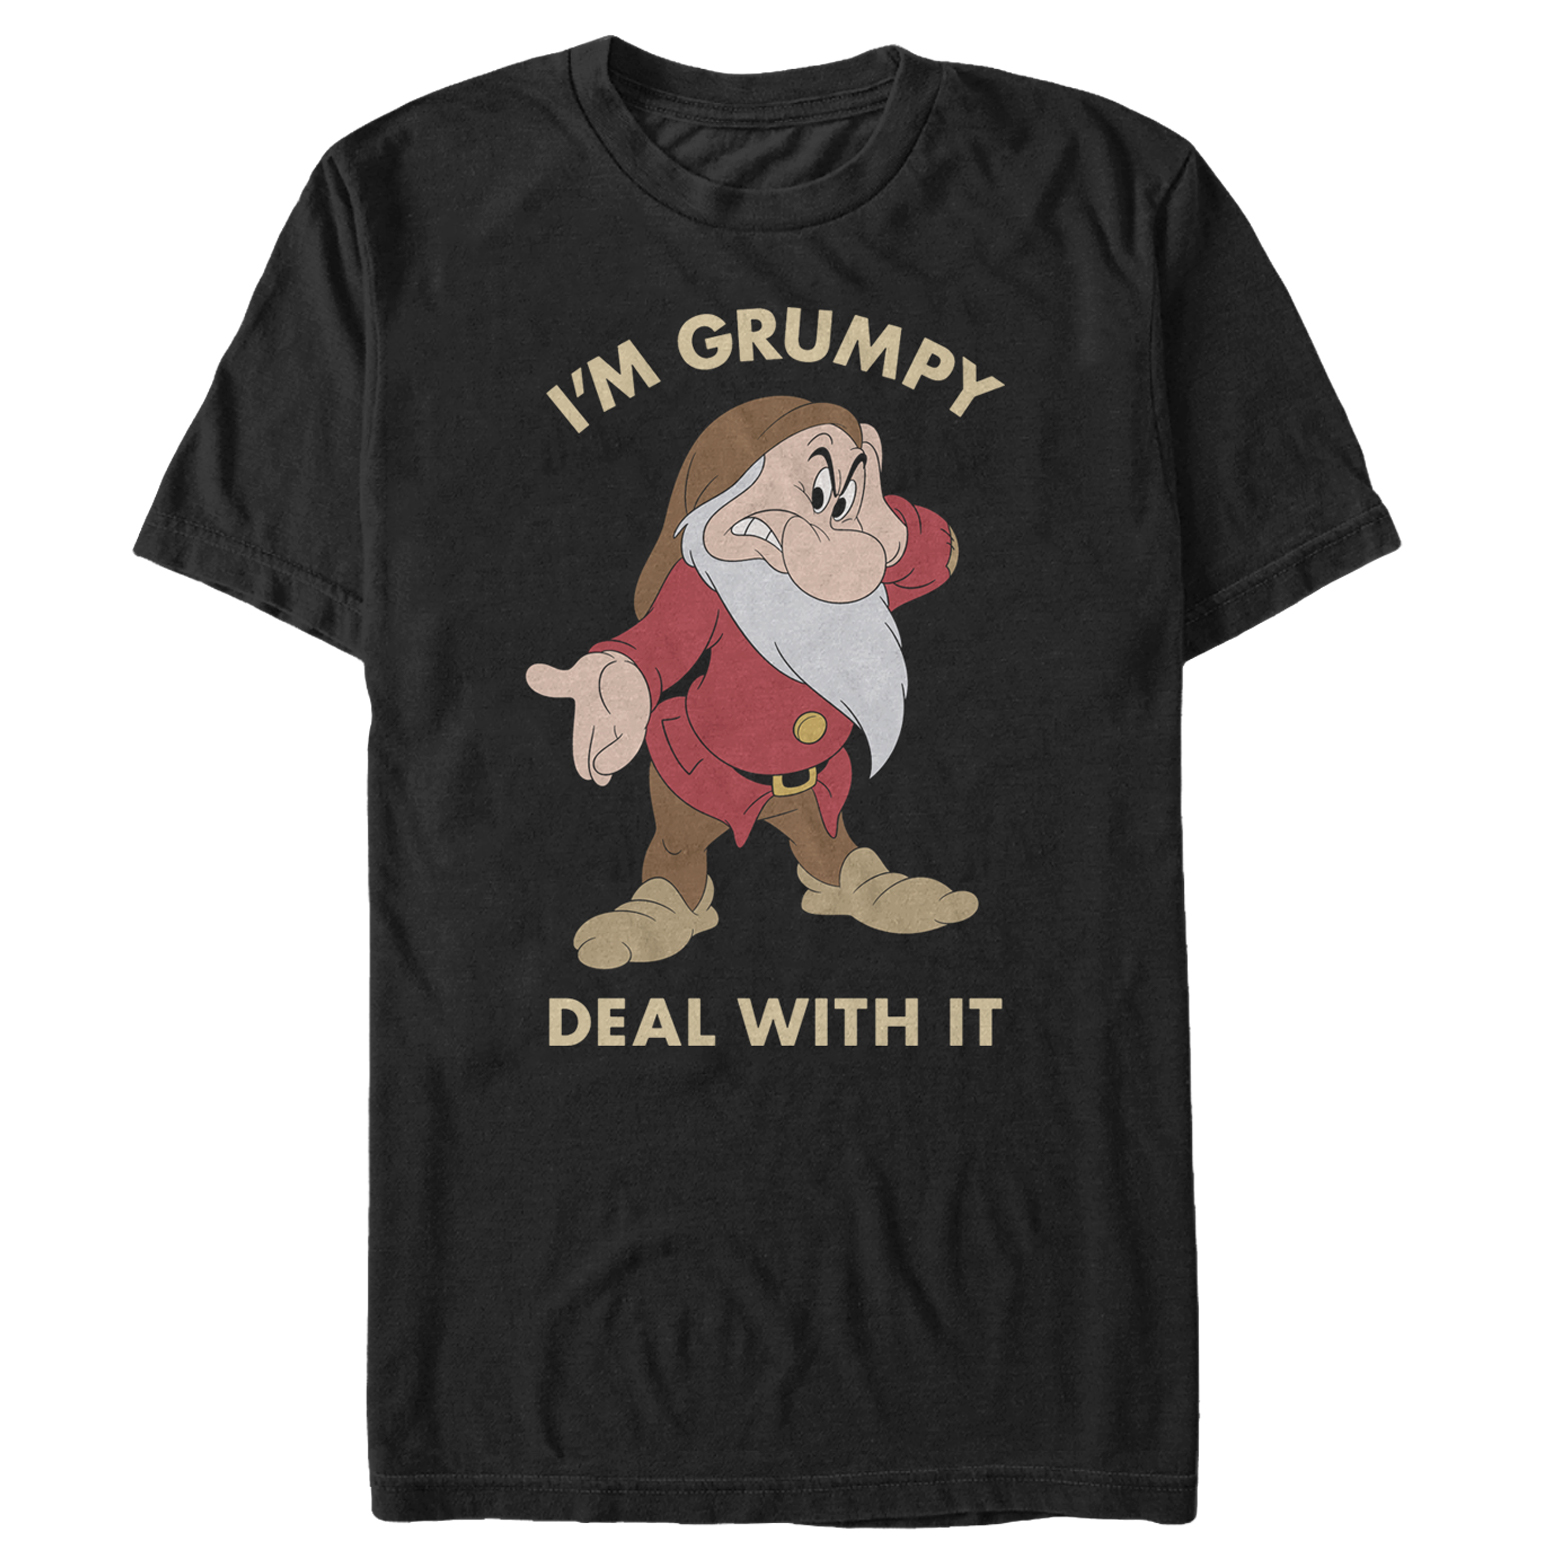 Snow White and the Seven Dwarves Men's Grumpy Deal With It T-Shirt